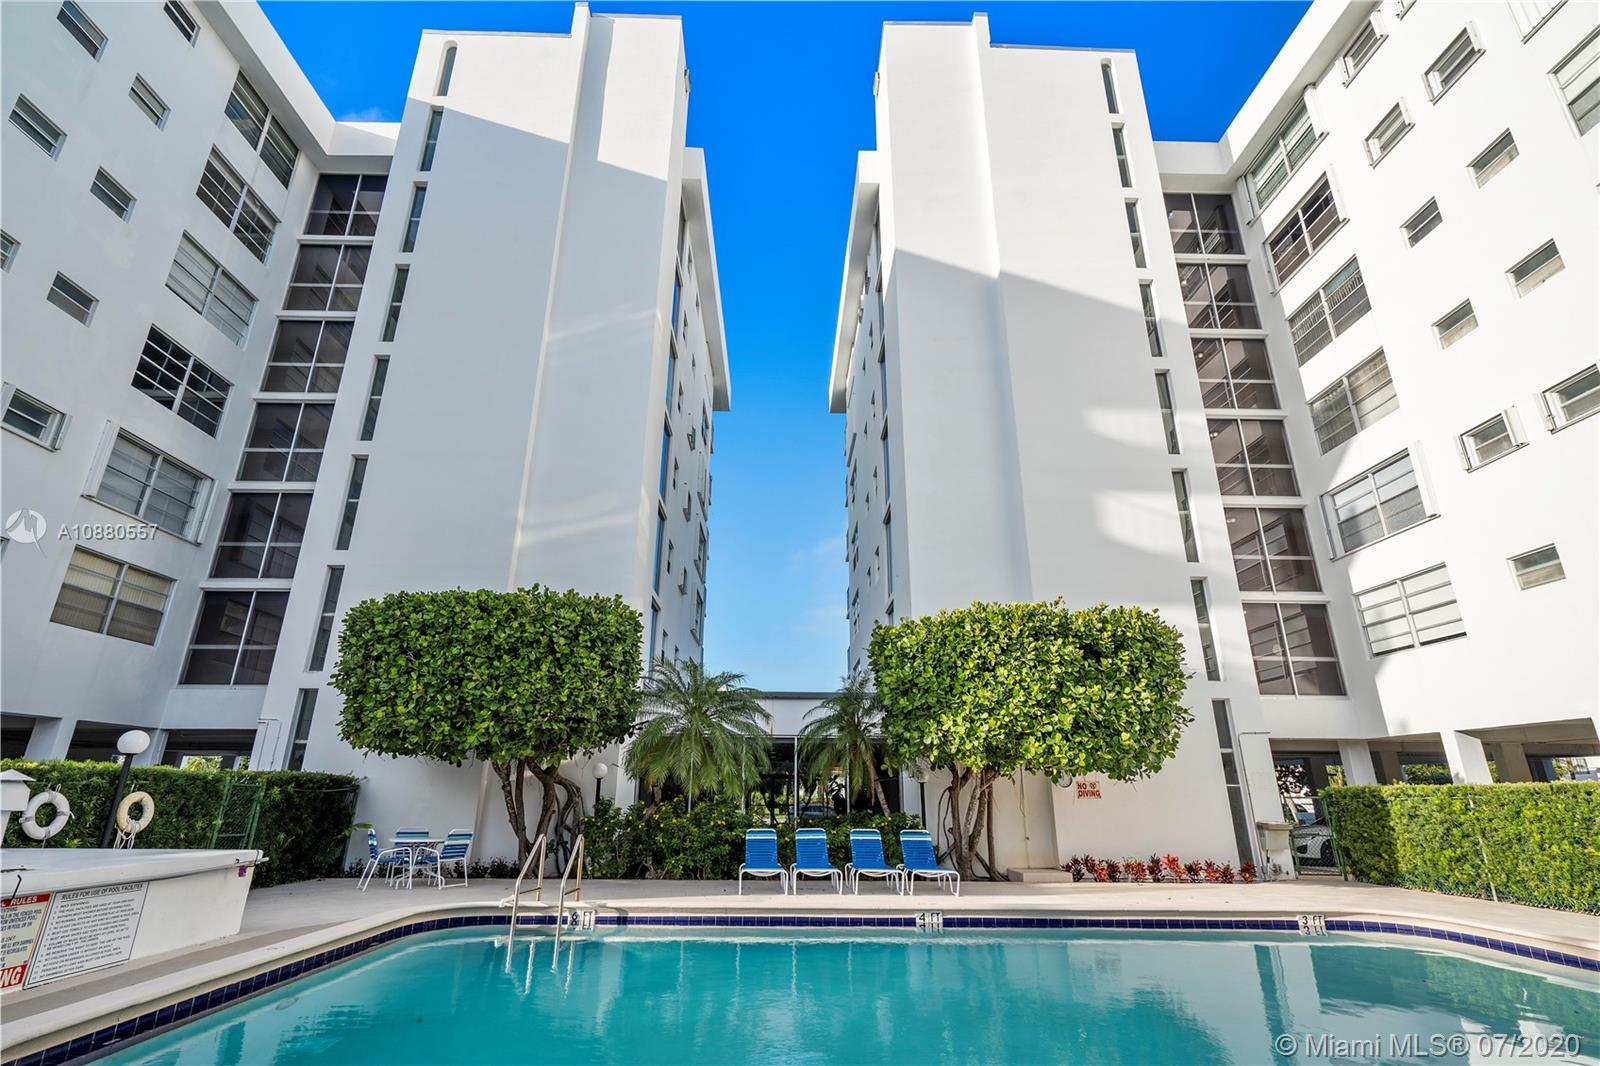 1050  93rd St #4E For Sale A10880557, FL